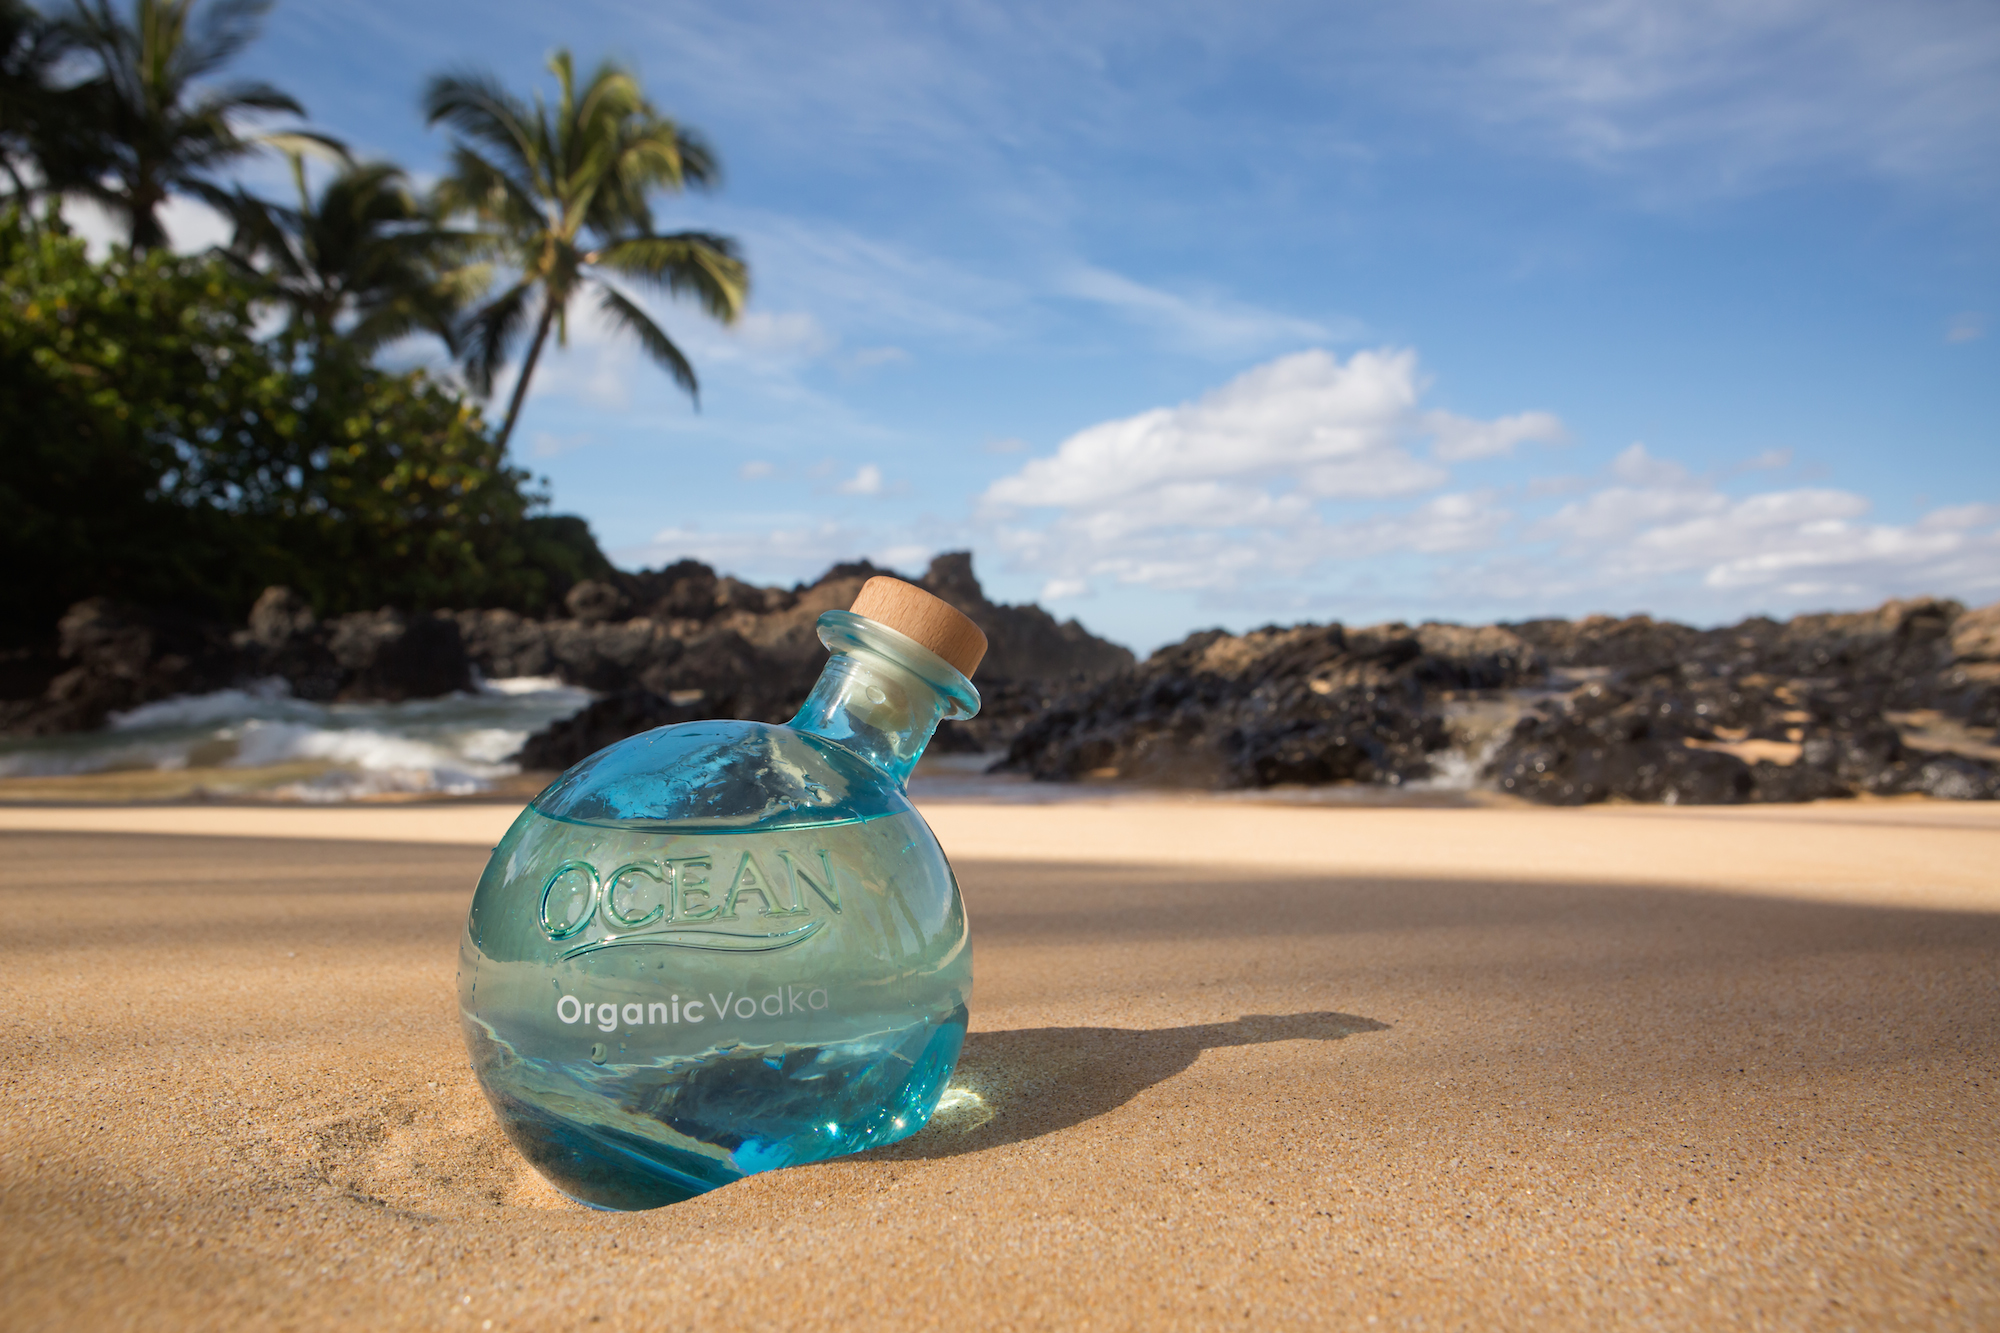 OCEAN Organic Vodka - Made in Hawaii